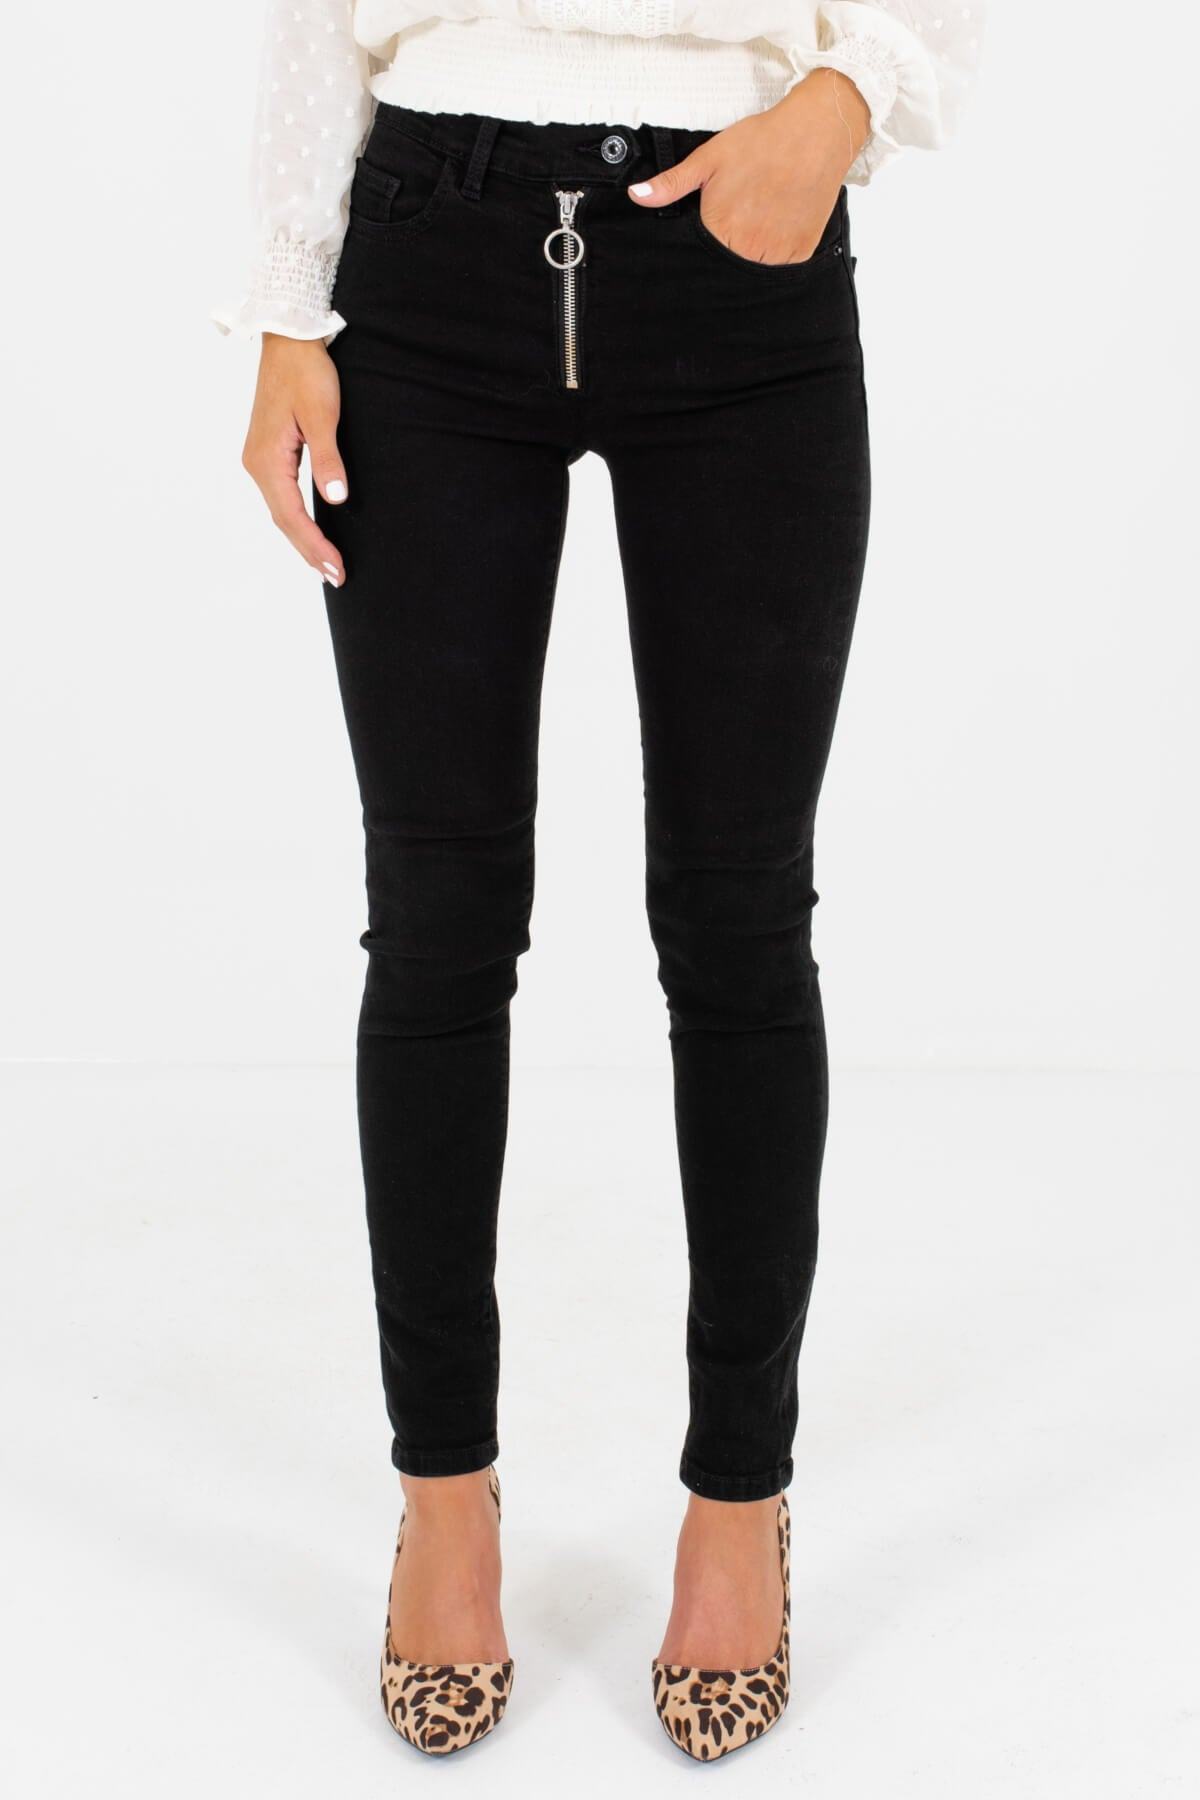 Black Denim Skinny Style Boutique Jeans for Women